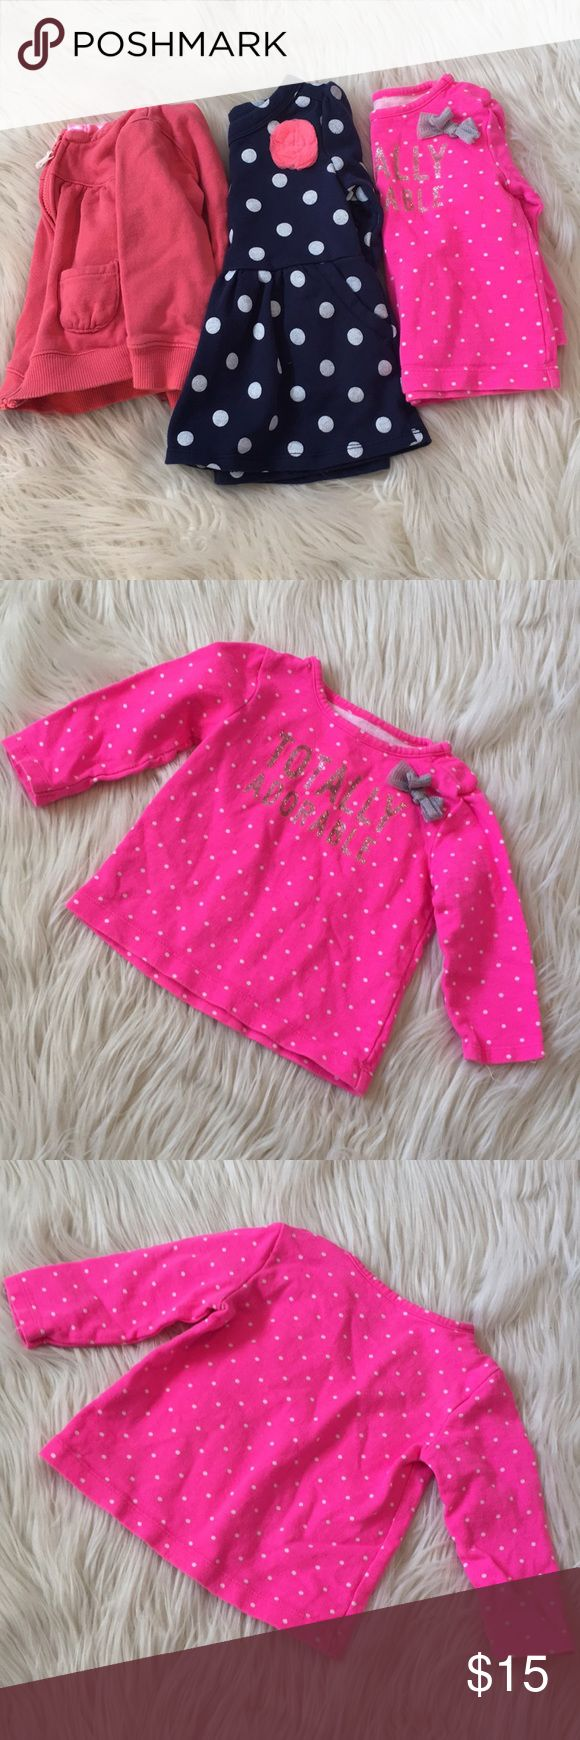 3 Pack! Carter's Sweaters - 12m All from Carters - Great Used Condition!  The Hoodie has the Most Use, the Pullovers No More Than 3x Each.  Blue Polka Dot is Peplum Style with Pockets.  No Stains or Discoloration. Carter's Shirts & Tops Sweatshirts & Hoodies